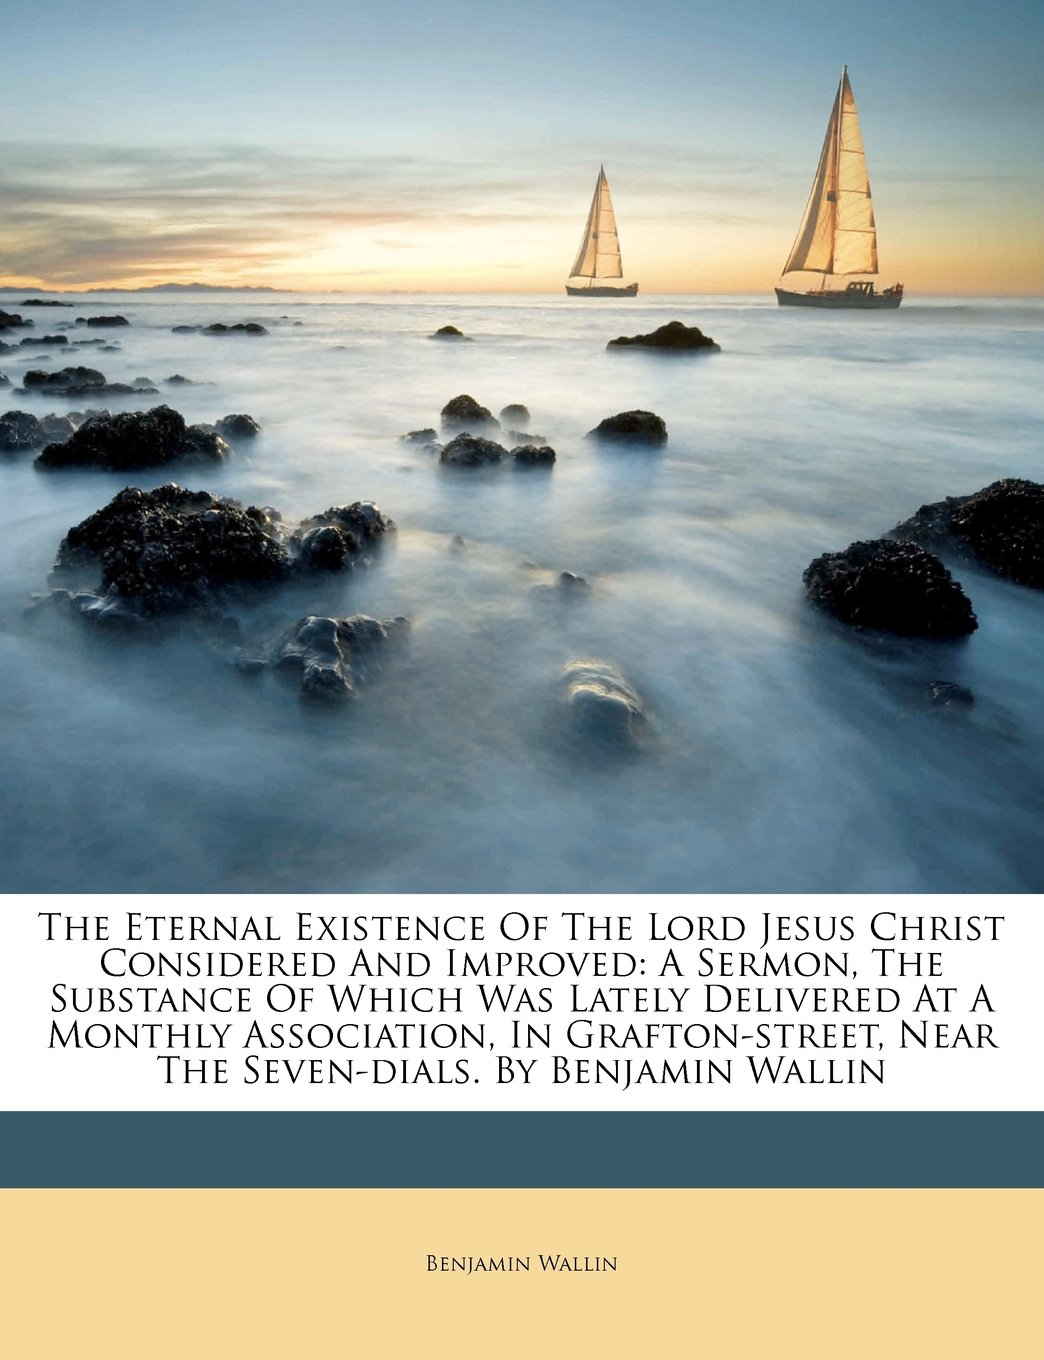 Download The Eternal Existence Of The Lord Jesus Christ Considered And Improved: A Sermon, The Substance Of Which Was Lately Delivered At A Monthly ... Near The Seven-dials. By Benjamin Wallin PDF